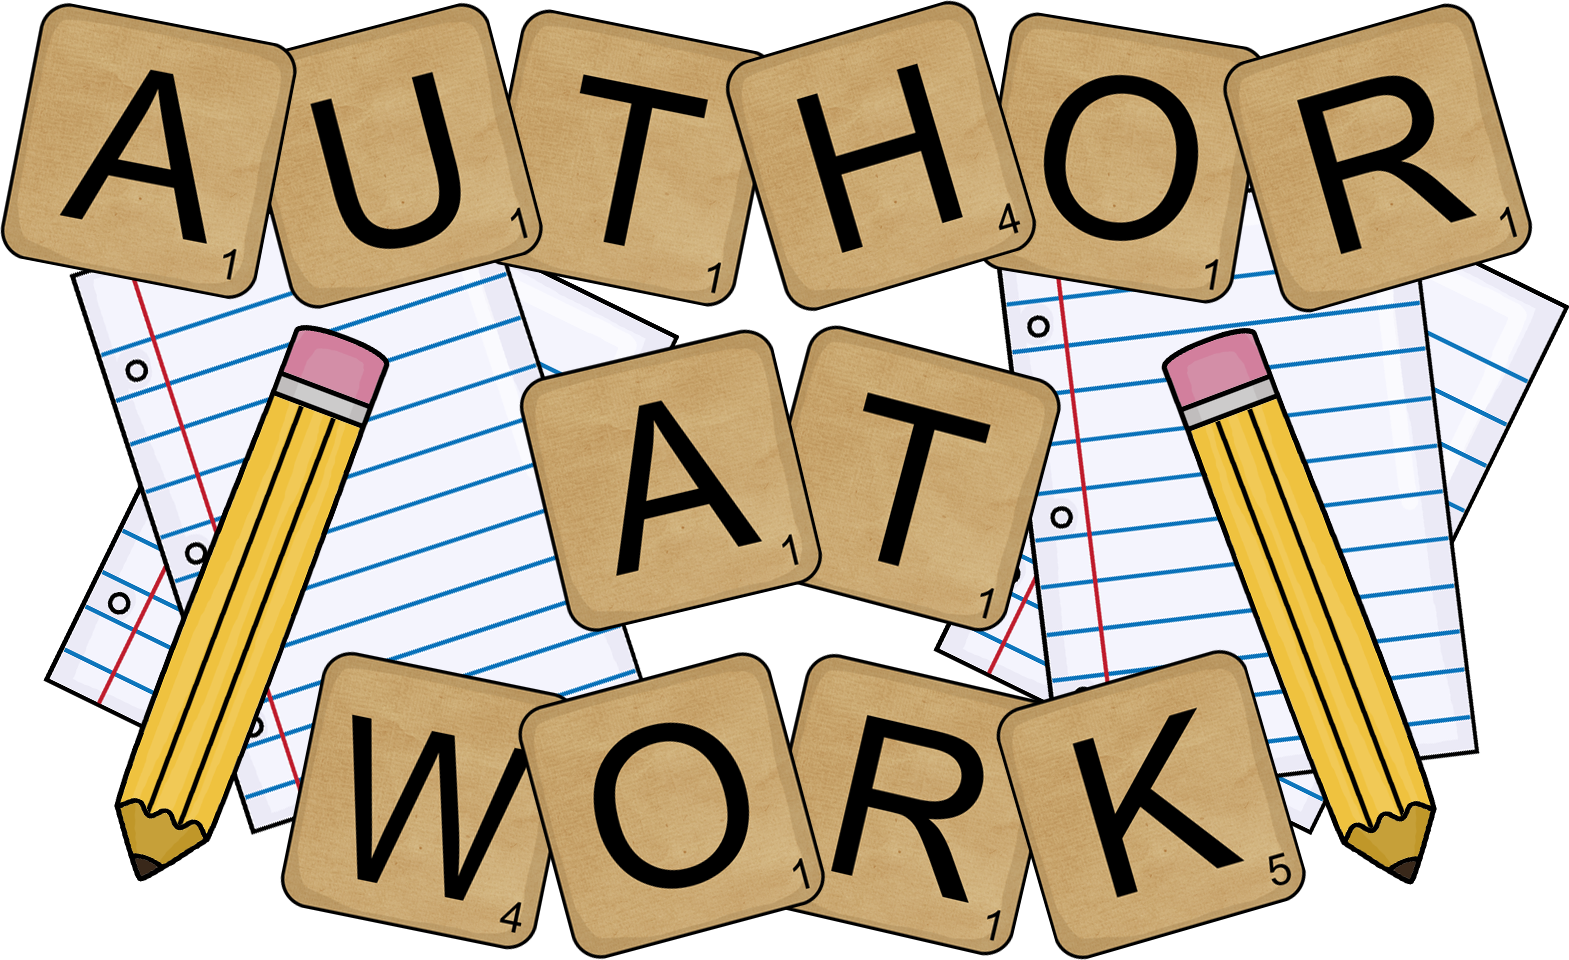 Author clipart revision. Revised and expanded at